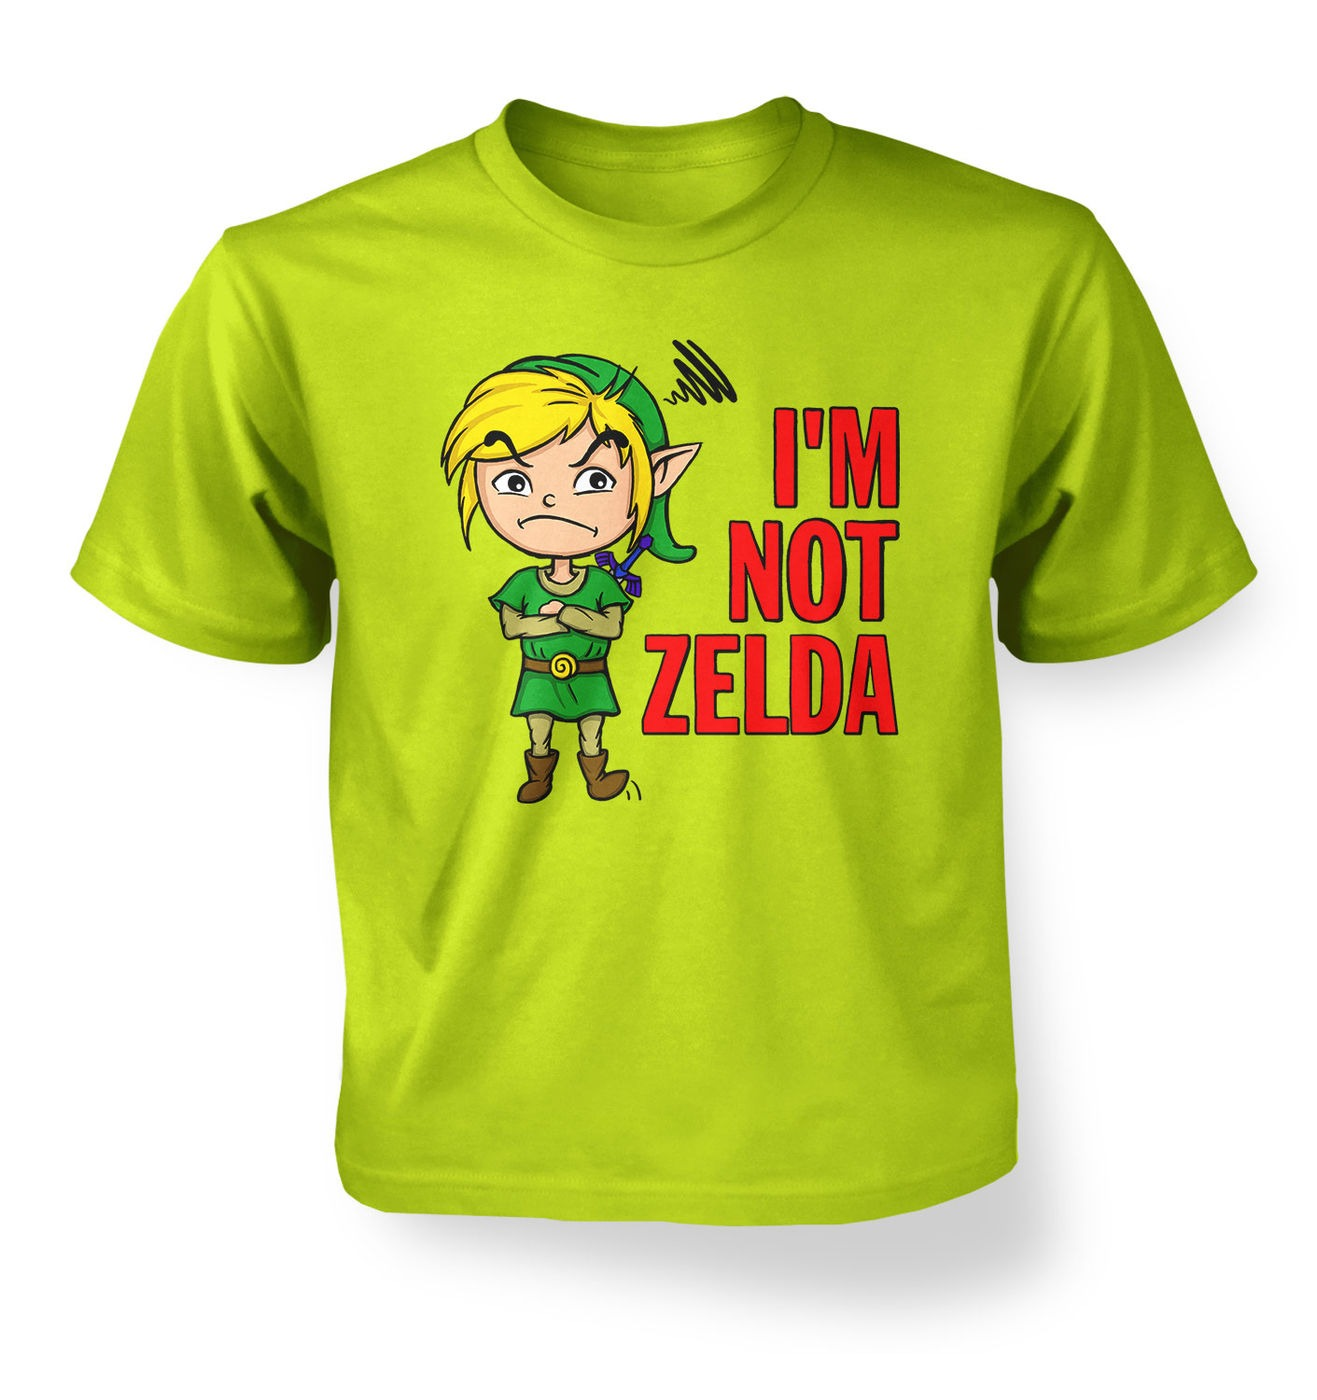 Not Zelda kids t-shirt by Something Geeky